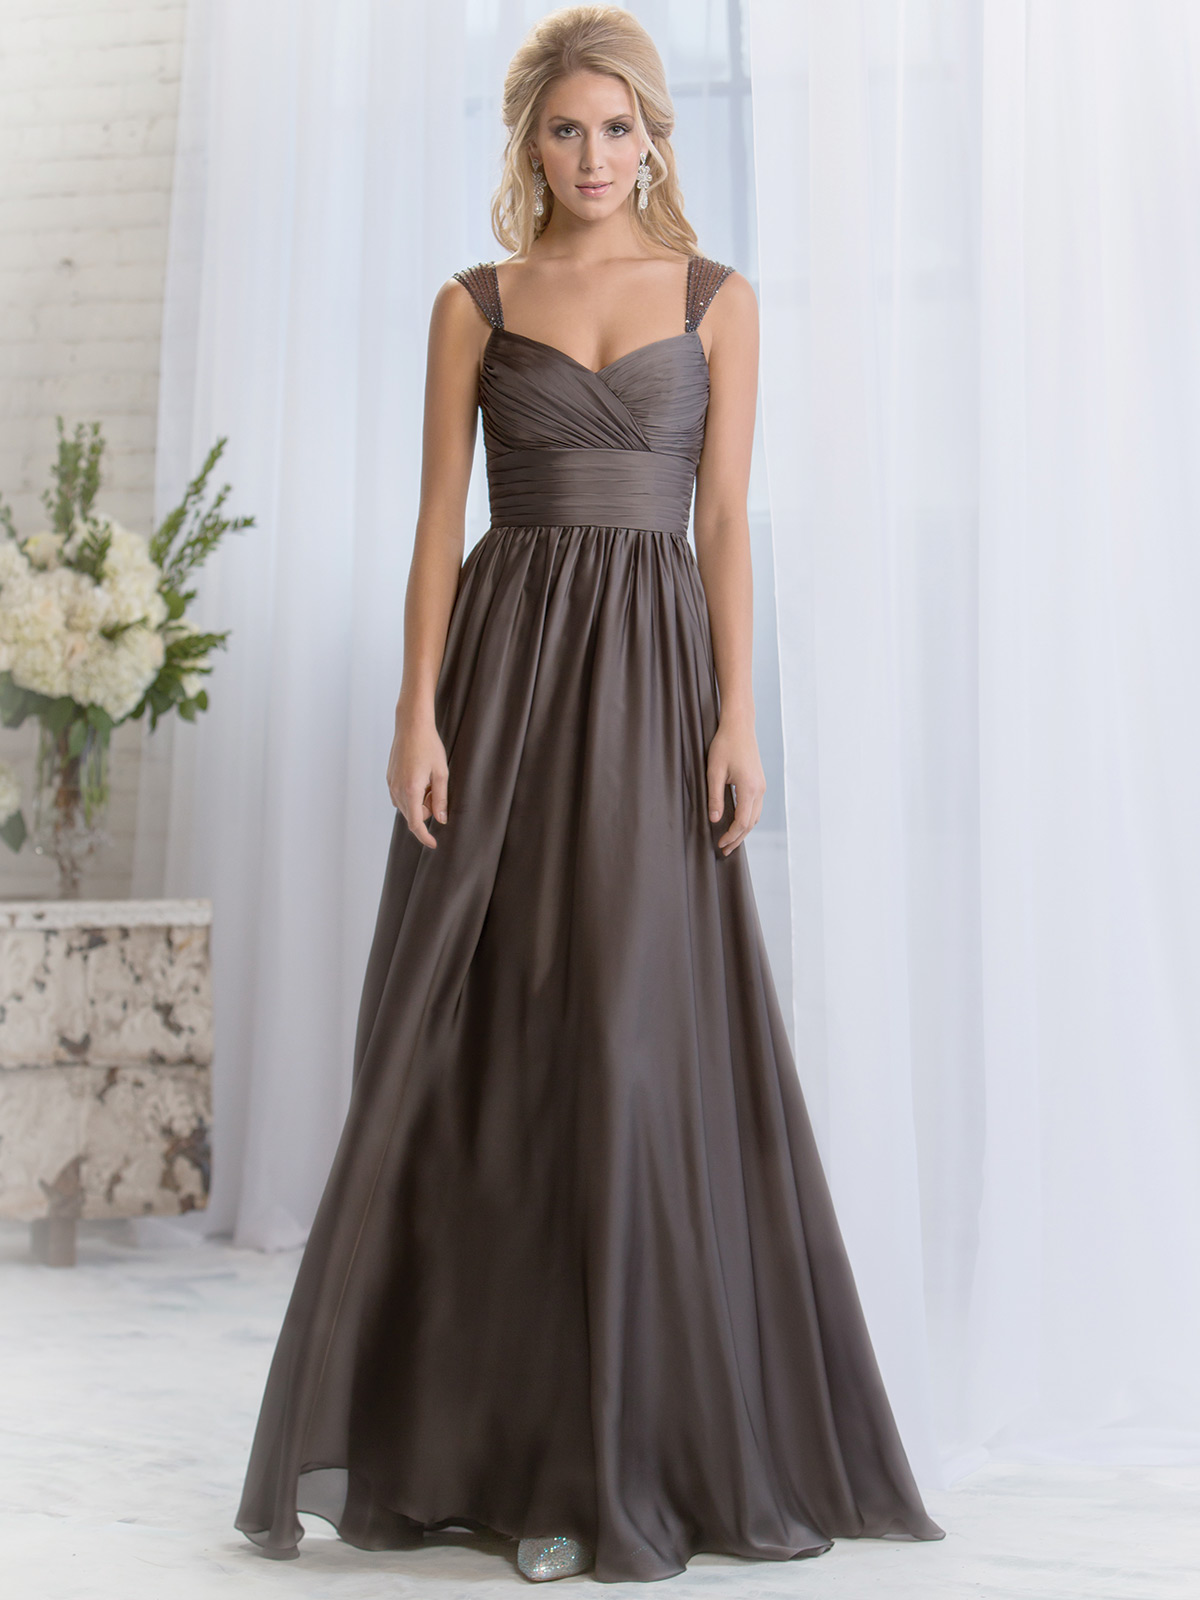 Belsoie bridesmaid dress l164055 dimitradesigns cap sleeves pleated belsoie bridesmaids dress by jasmine l164055 ombrellifo Choice Image